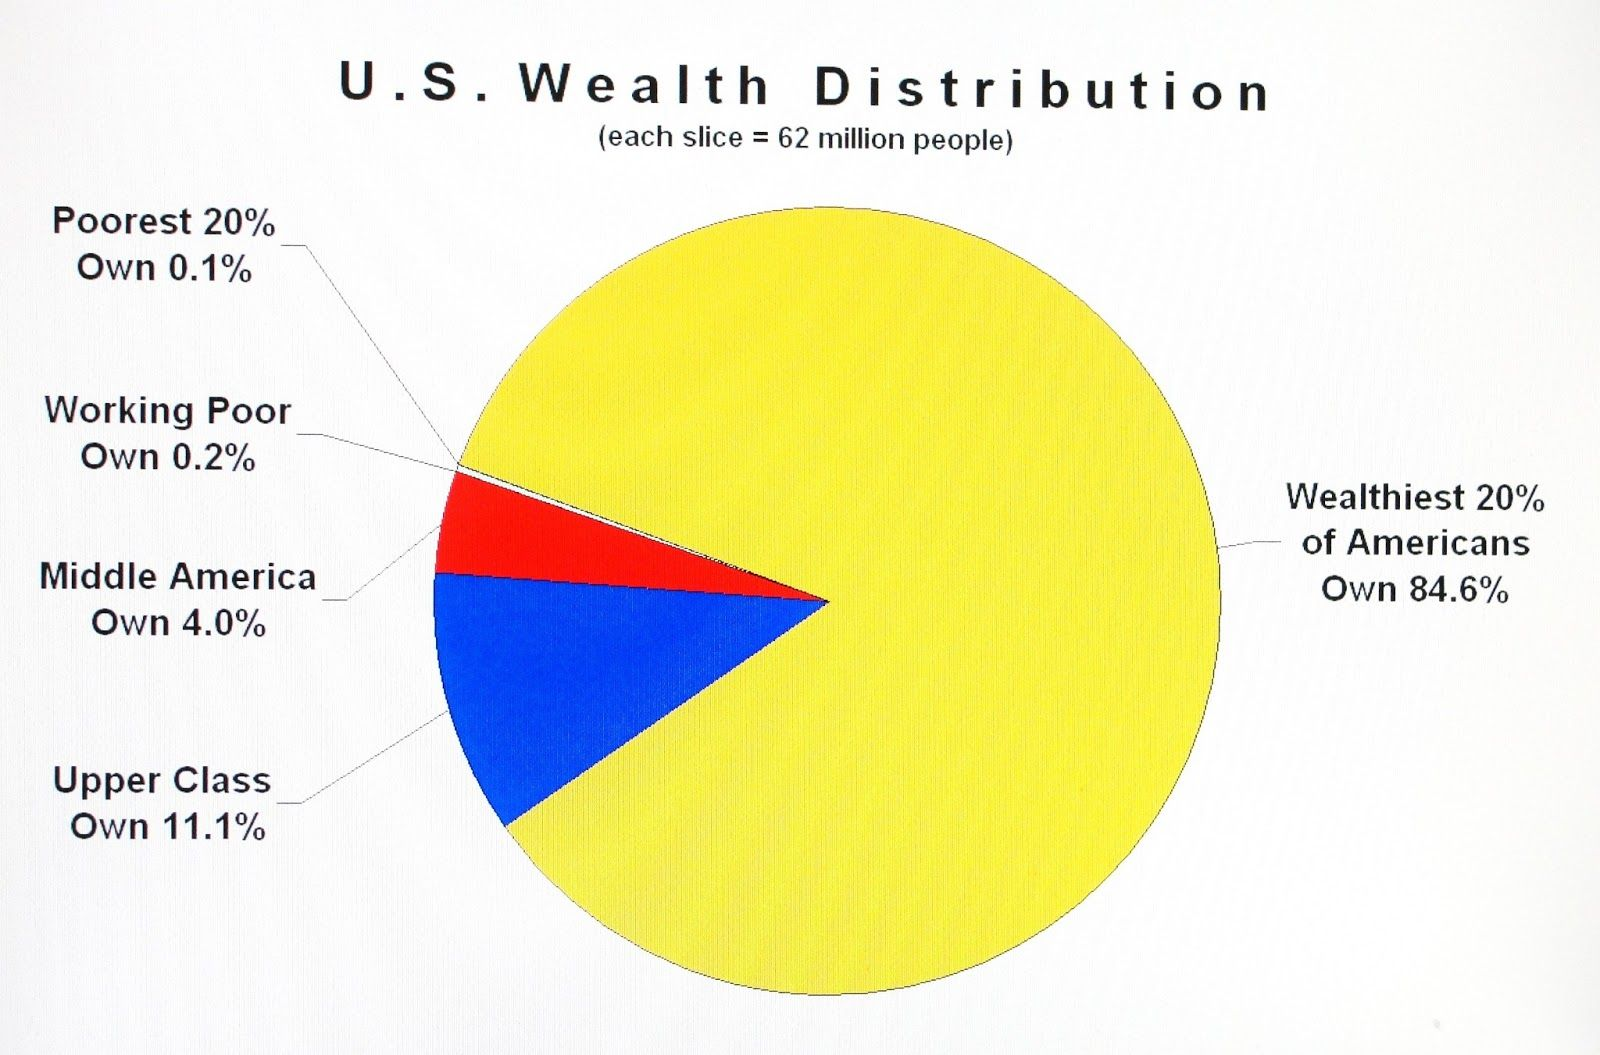 Income distribution pie chart whoowns what in america history income distribution pie chart whoowns what in america nvjuhfo Image collections